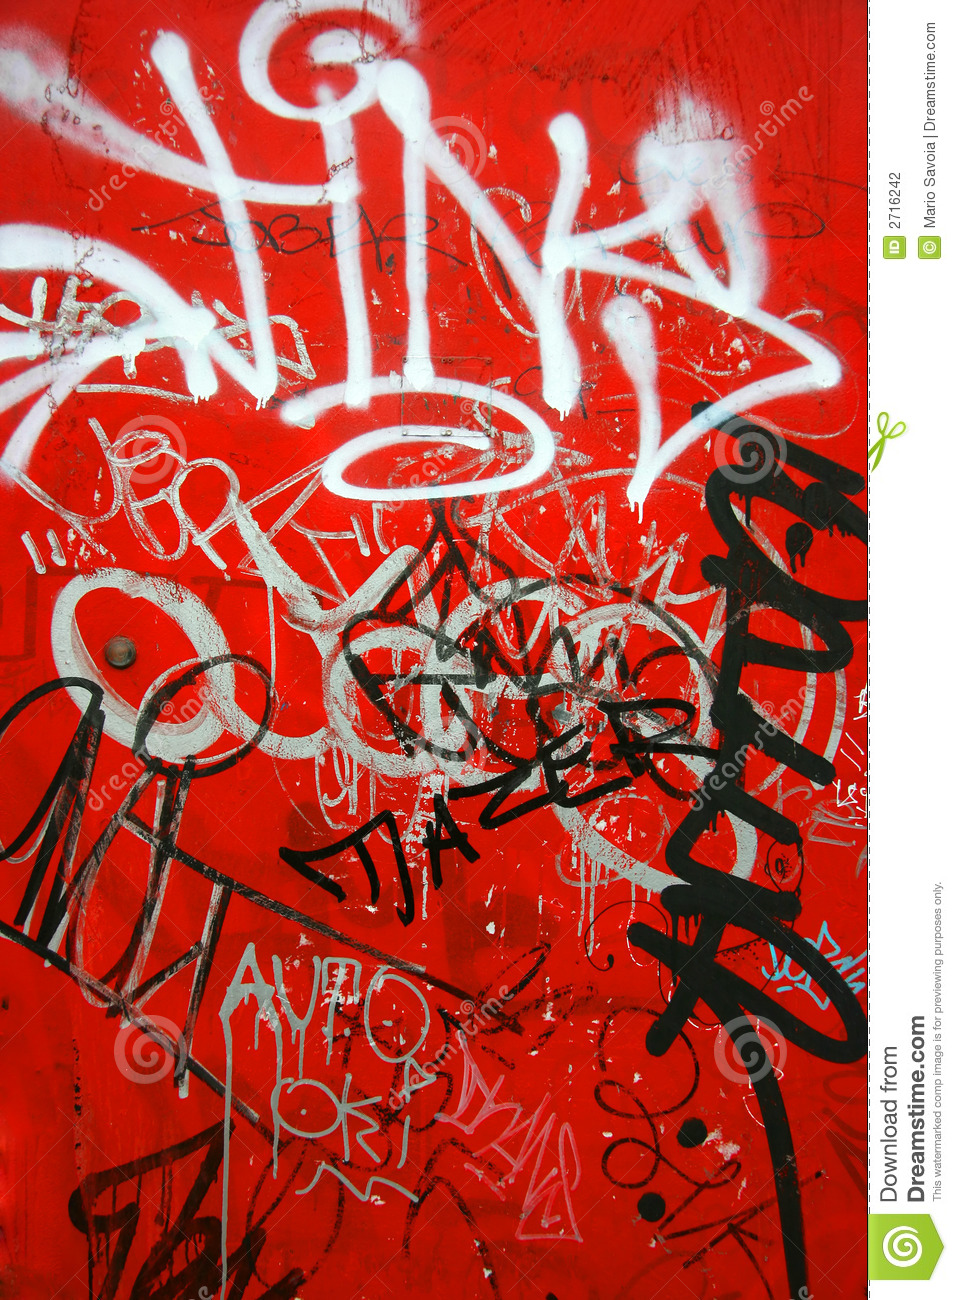 Graffiti On Red, Vertical Stock Photography - Image: 2716242